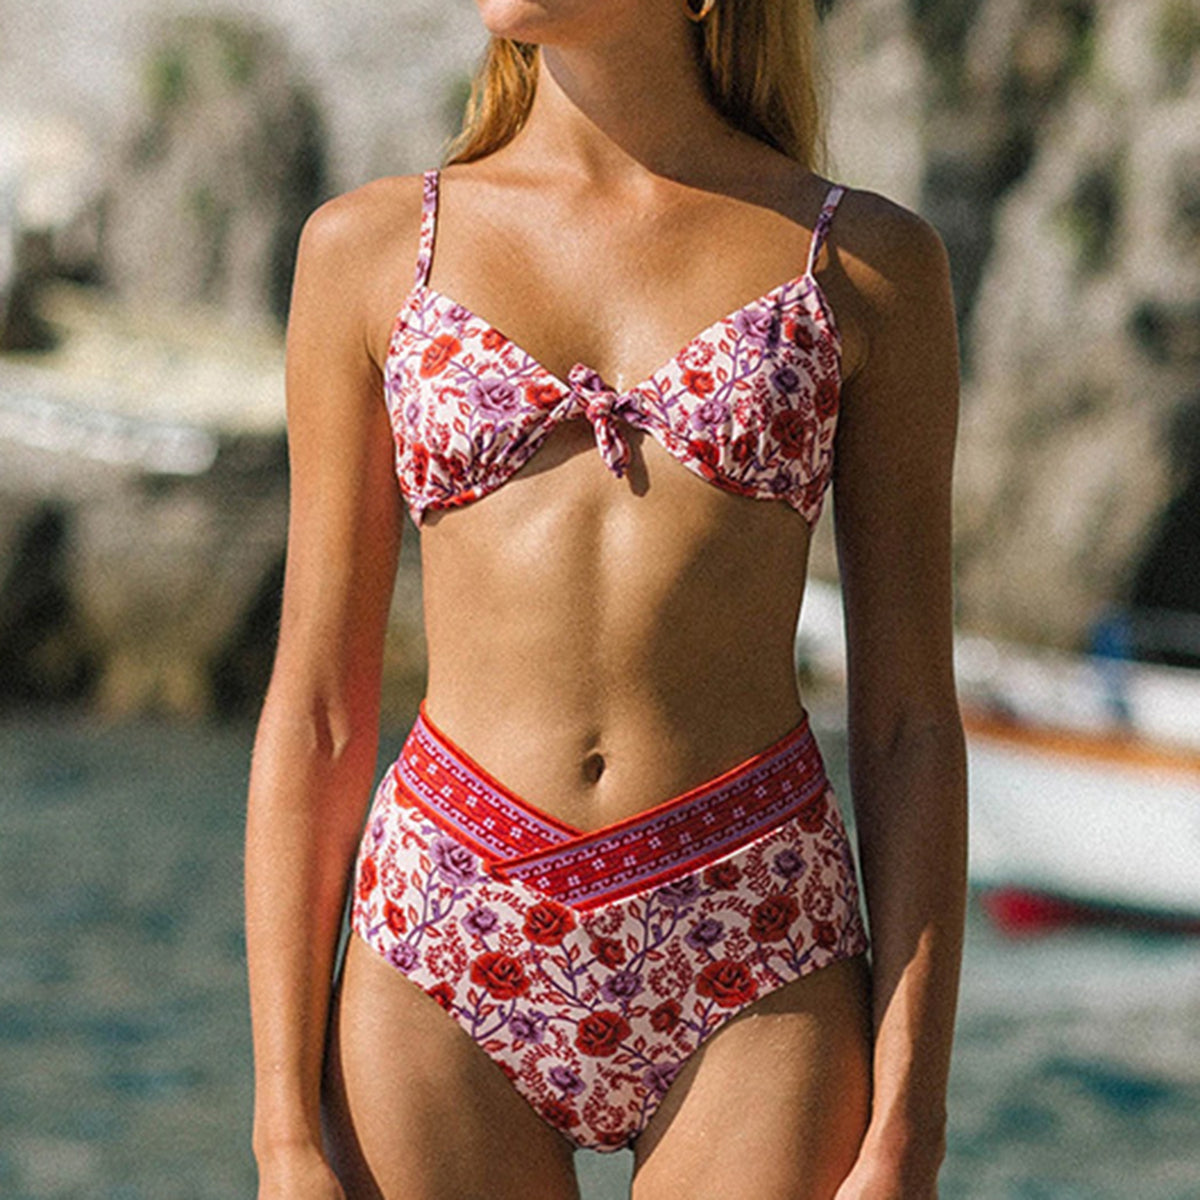 Floral Front Tie High Waist Bikini Swimsuit